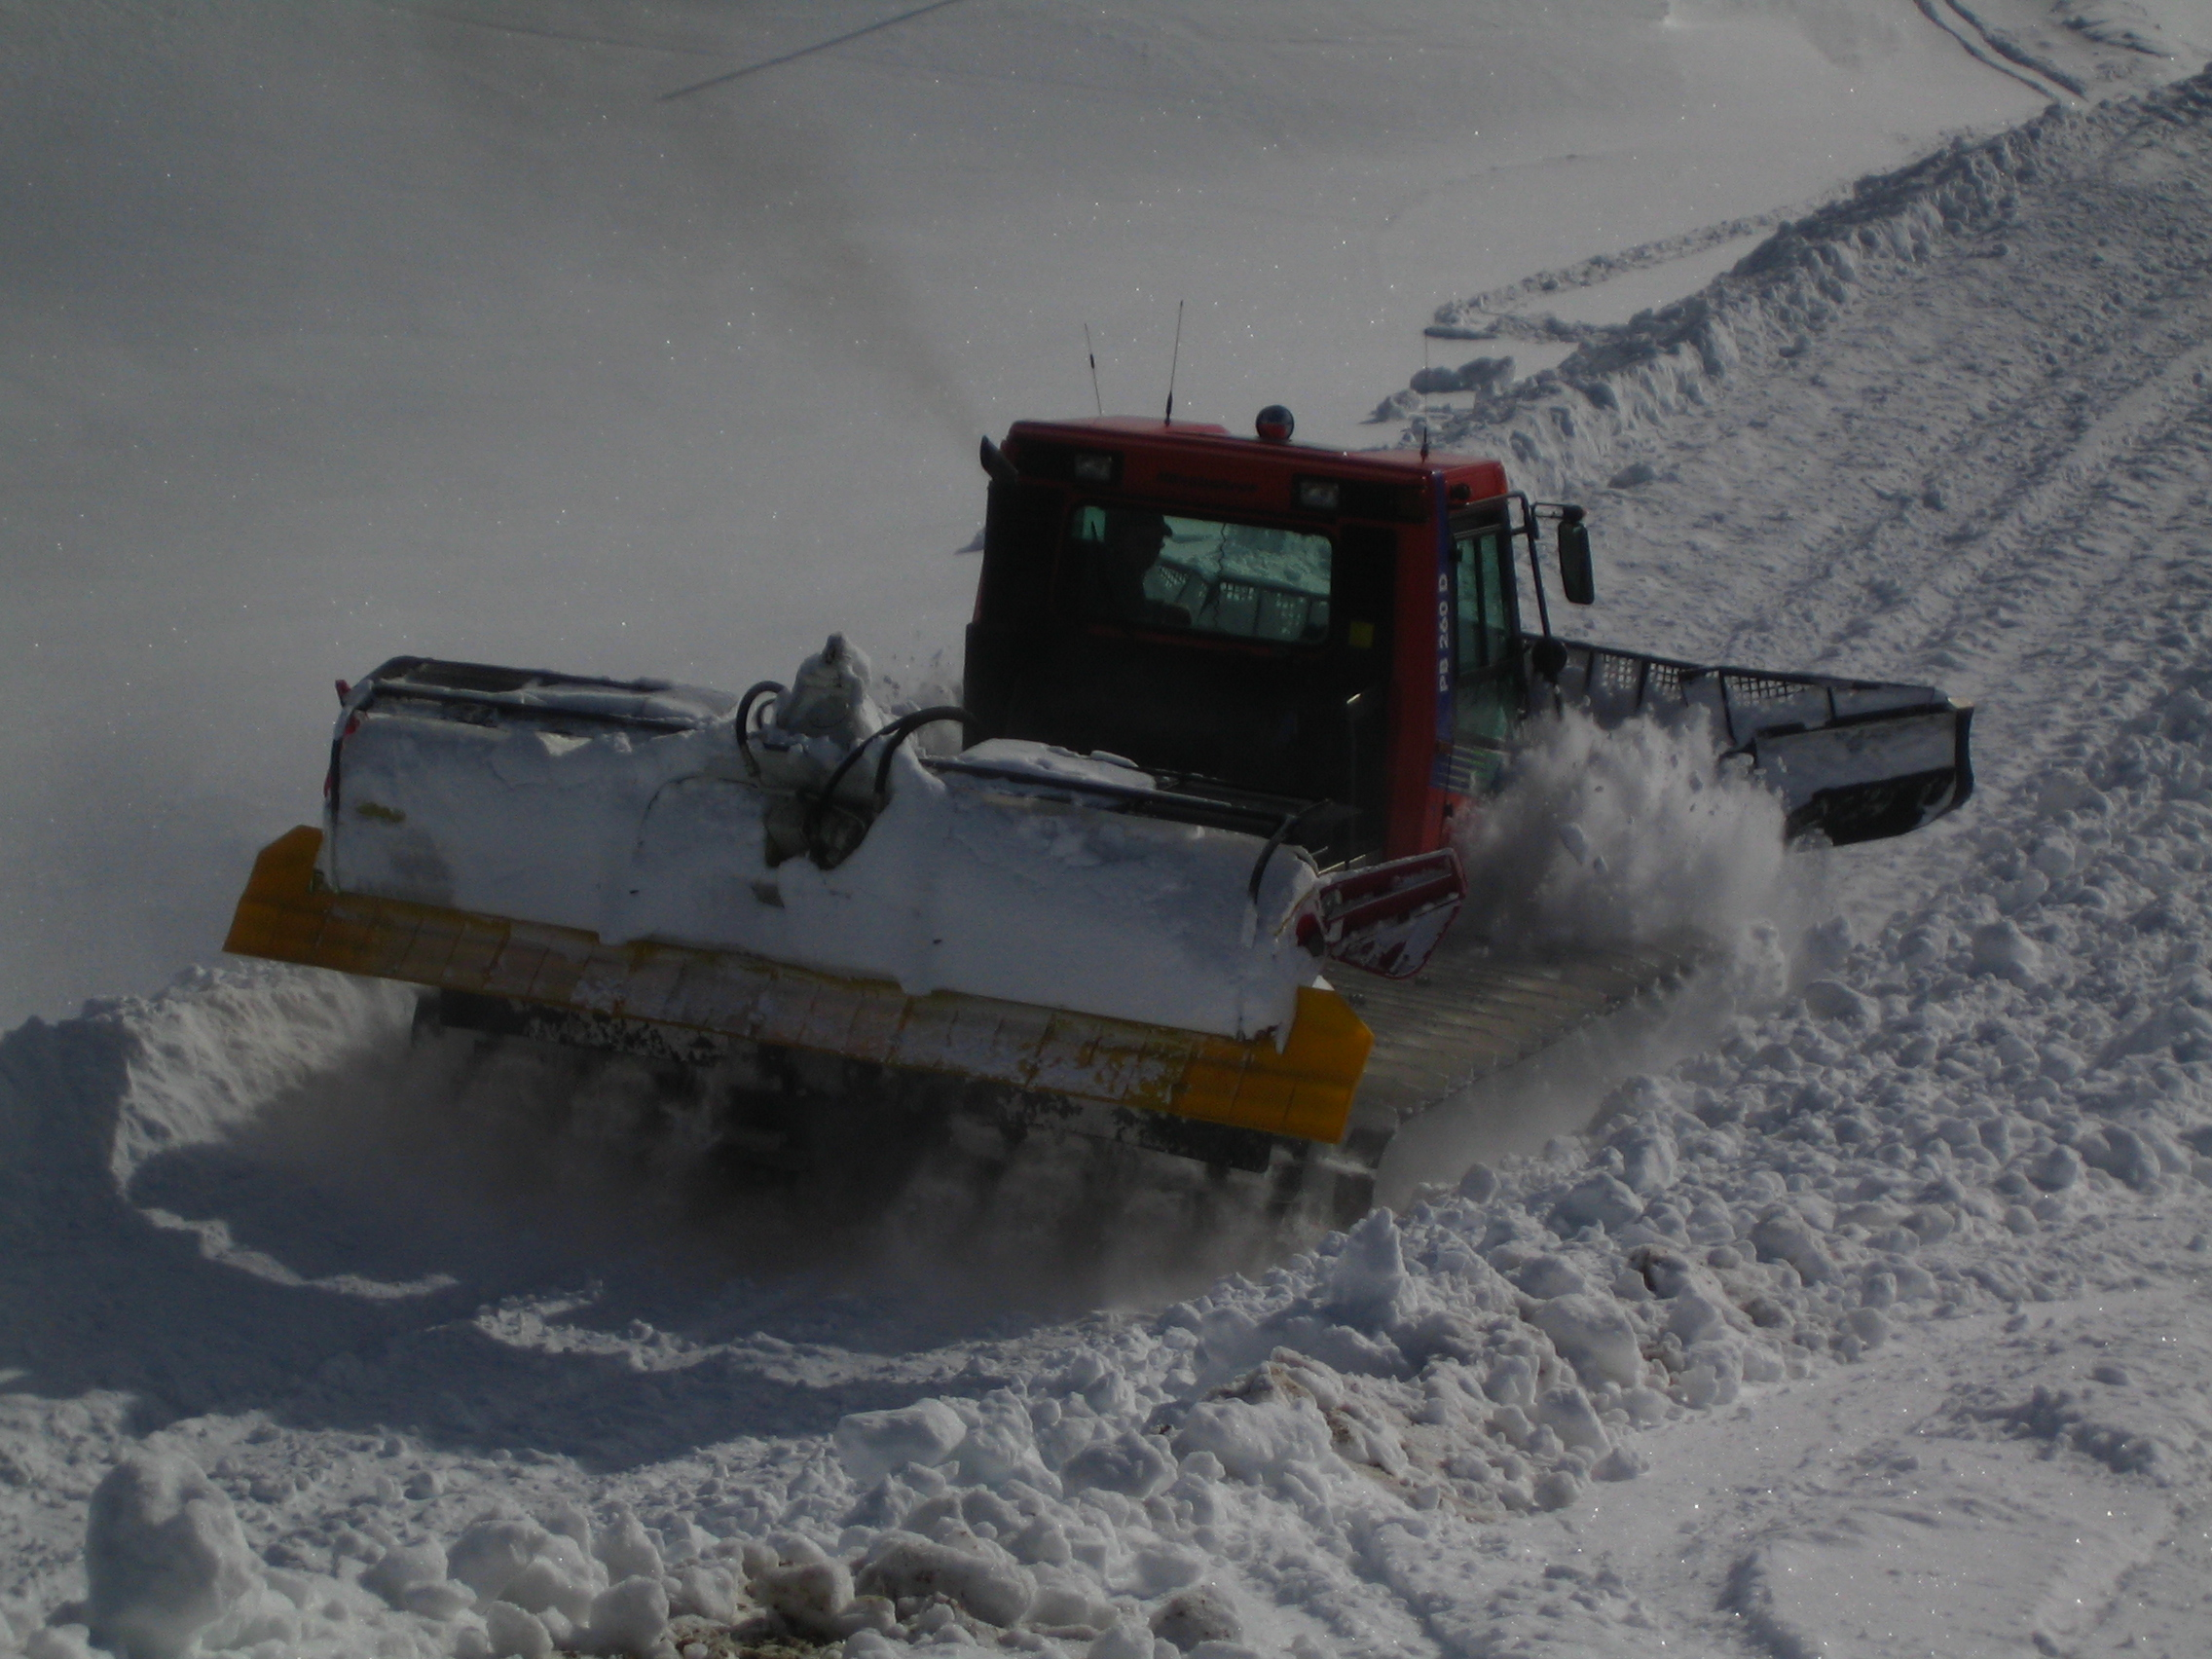 File:Snowcat Pistenbully JPG - Wikimedia Commons